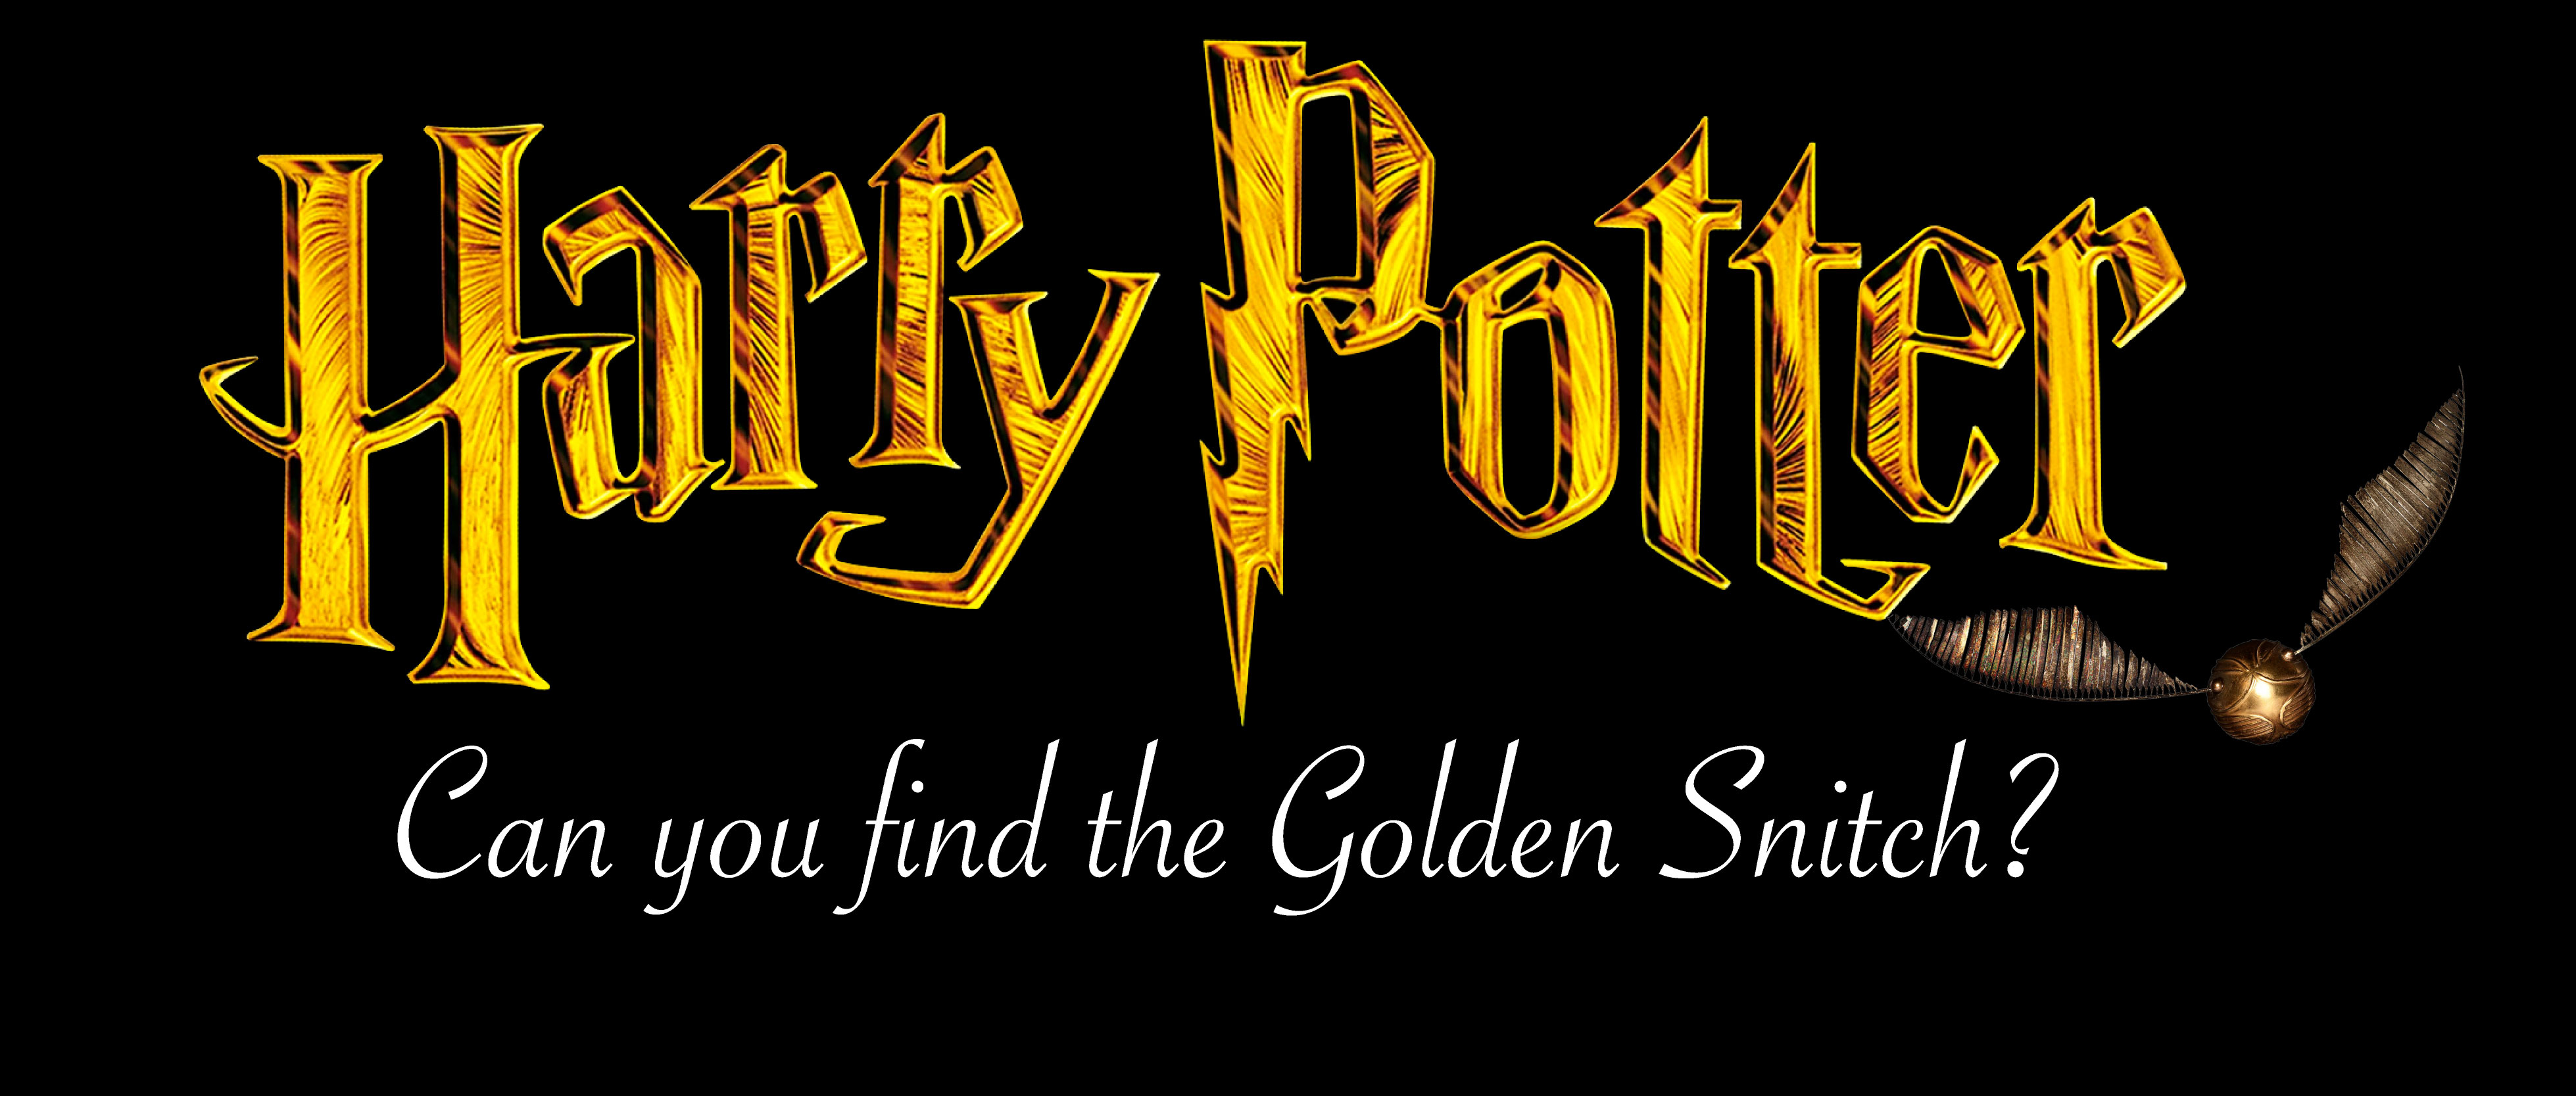 golden-snitch-wp